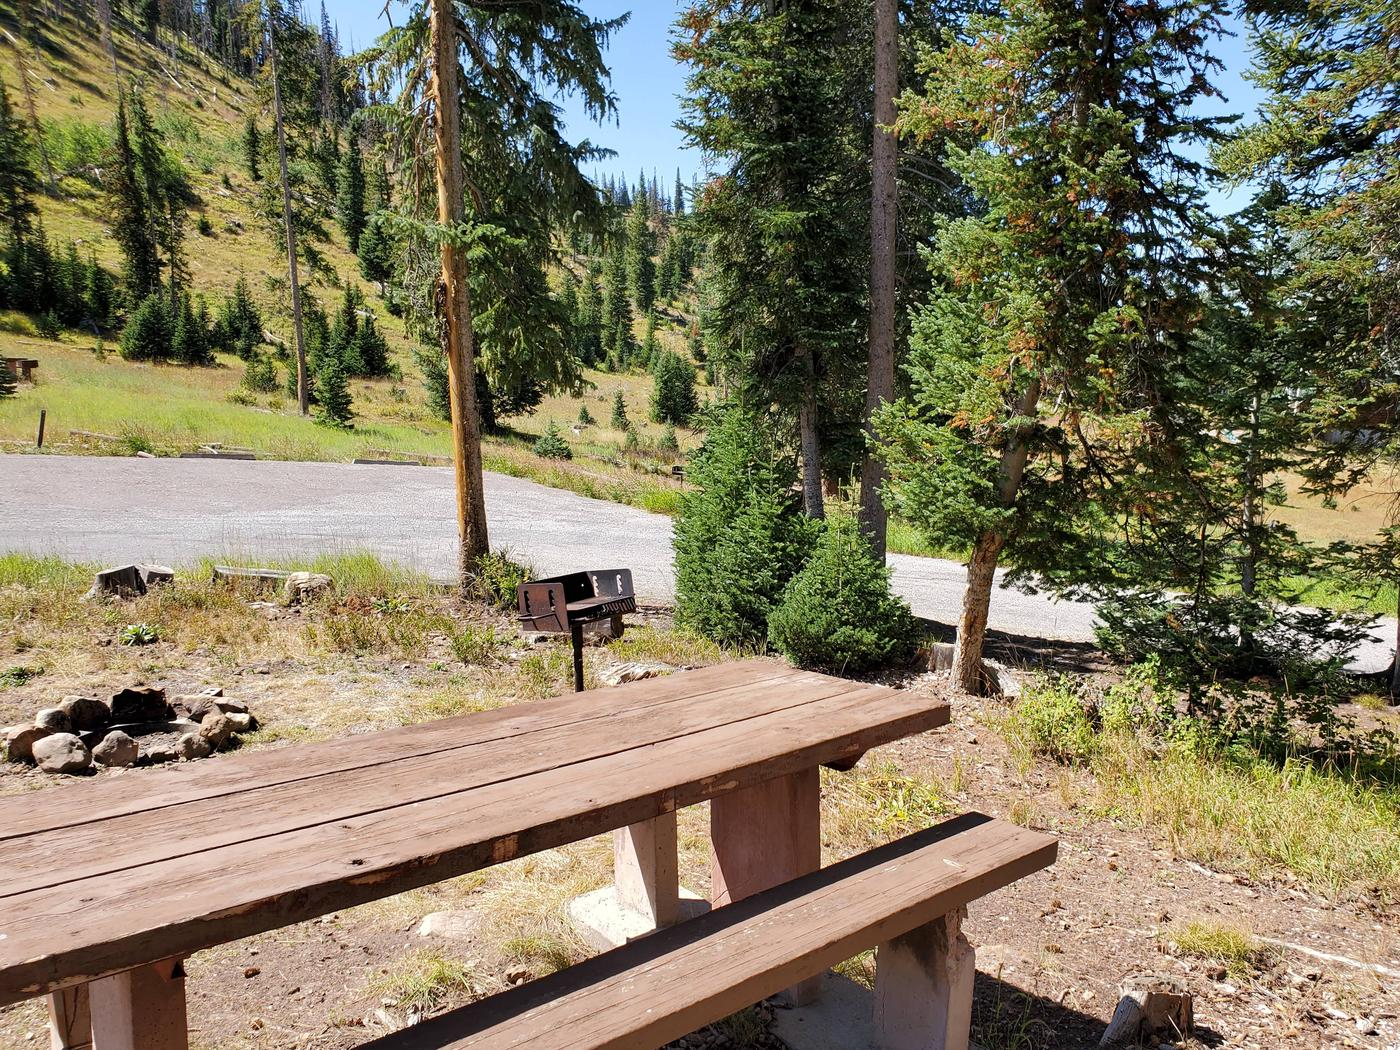 Flat Canyon Campground Site #12